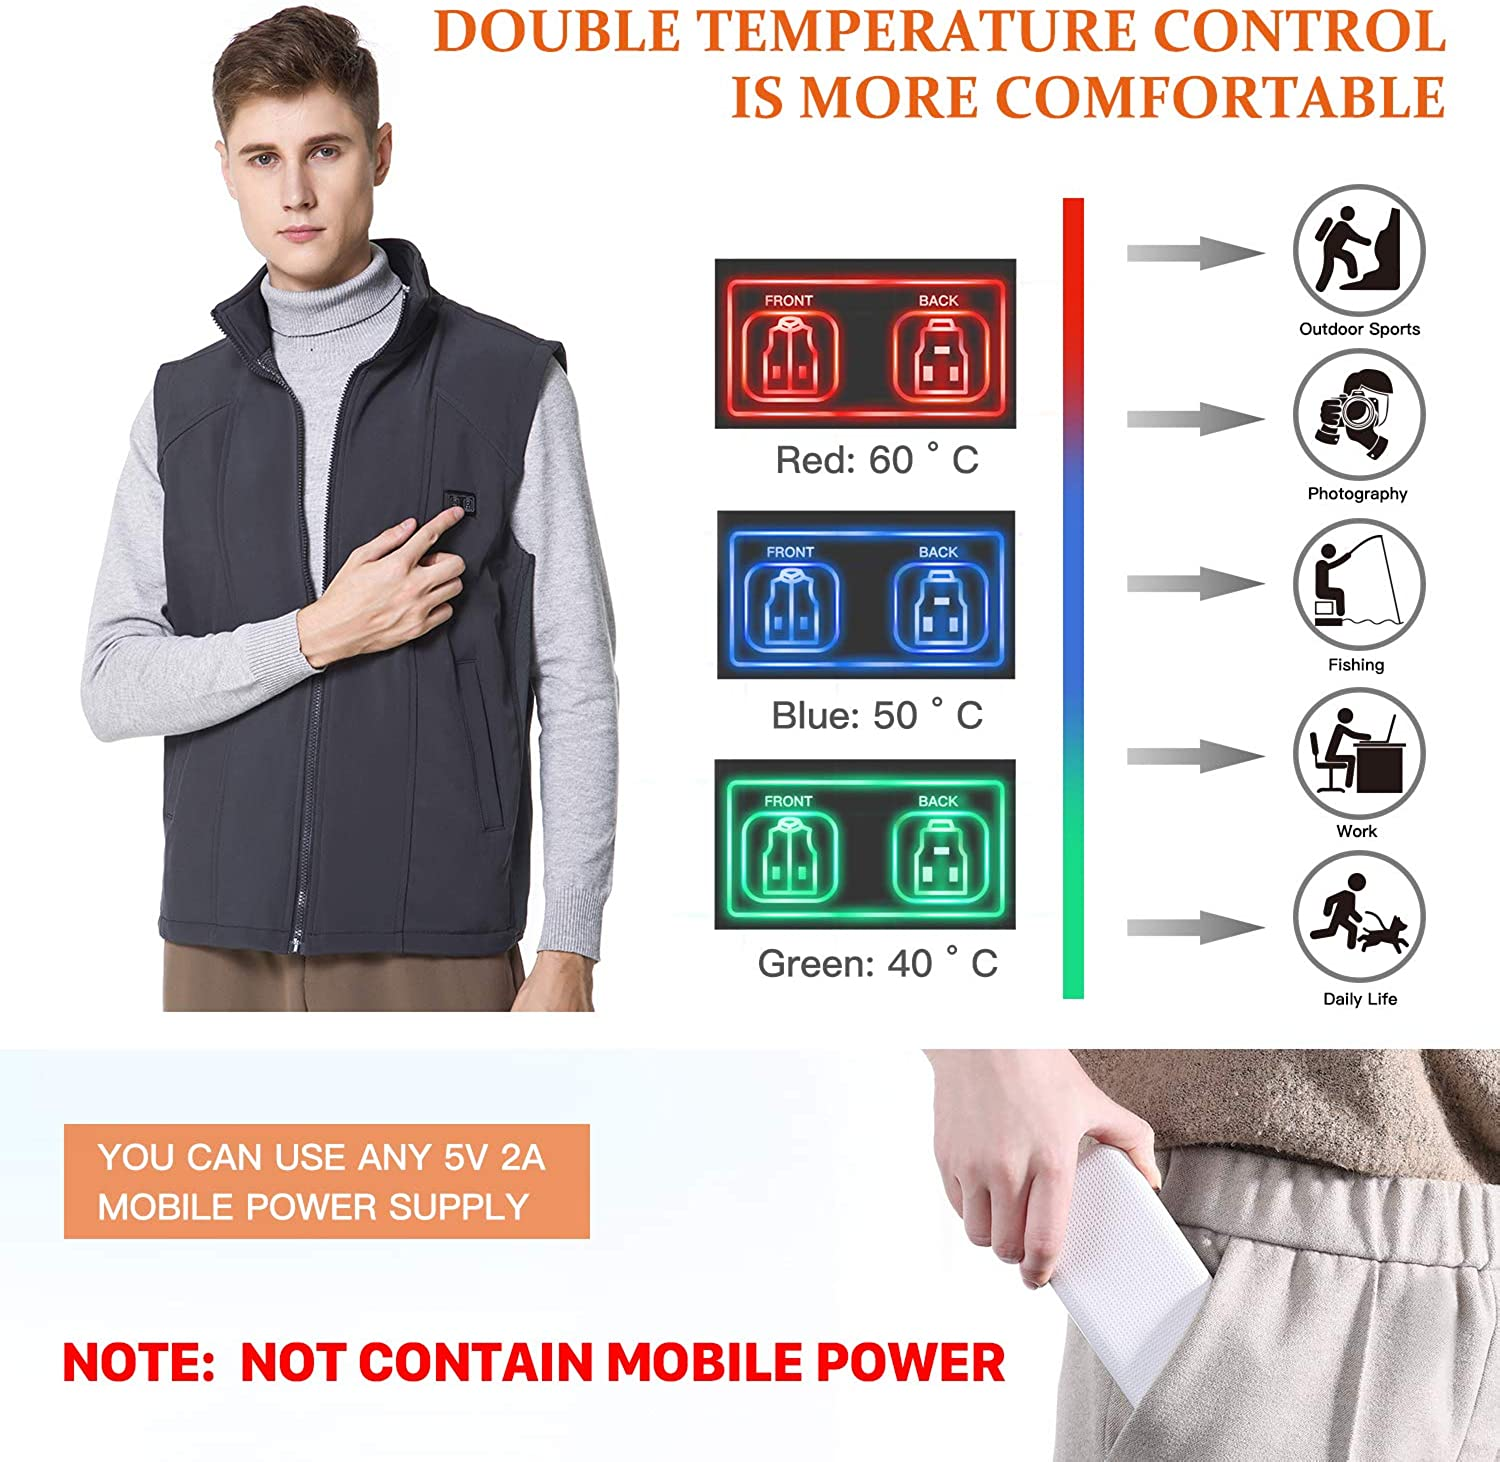 Keymao Electric Warmer USB Heated Vest 44 Temperature Regulation Lightweight Adjustable Size for Men Battery Not Included